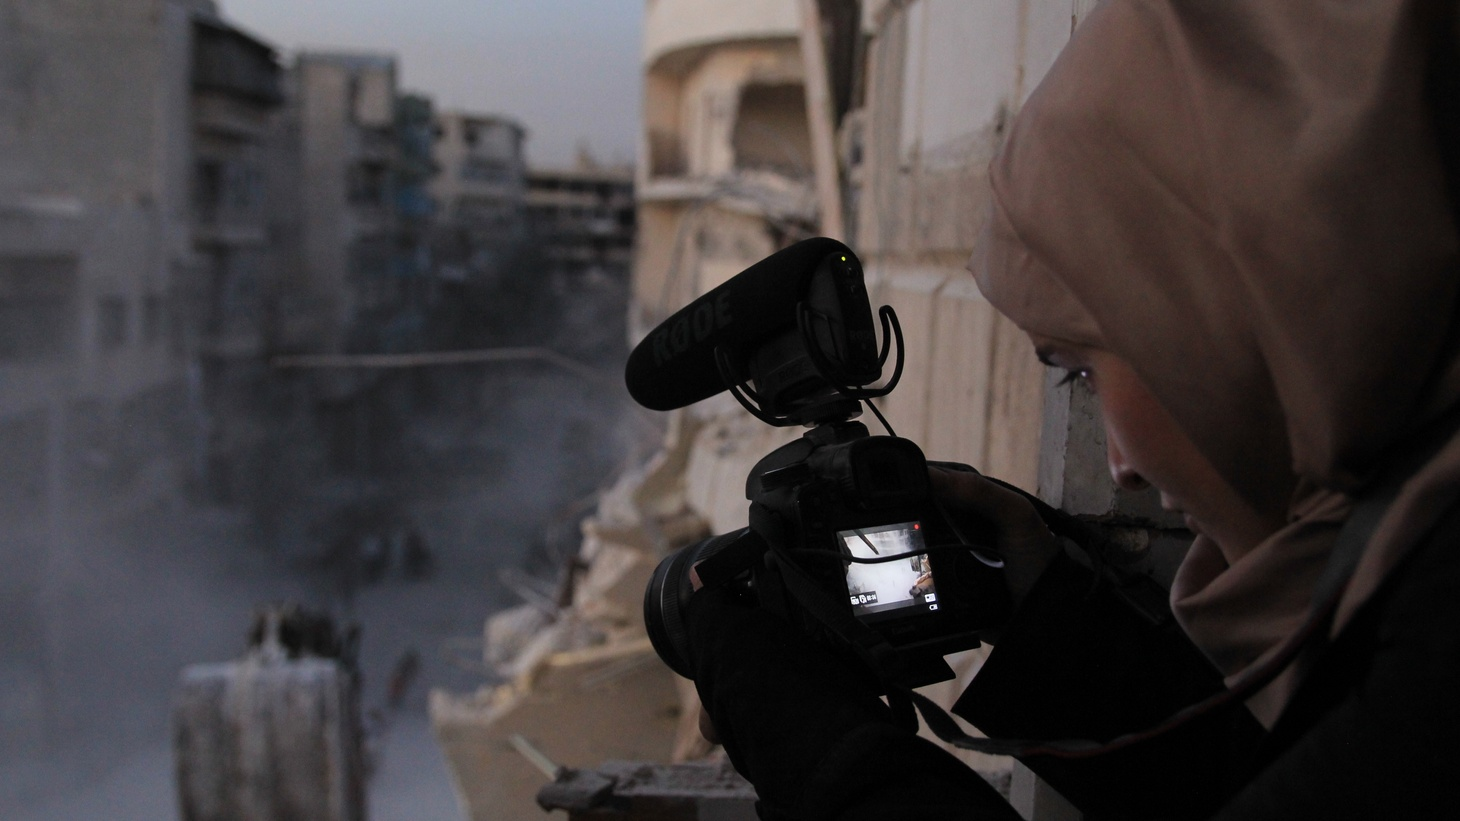 Waad al-Kateab filming the ruins of a building destroyed by bombing in besieged east Aleppo, October 2016.